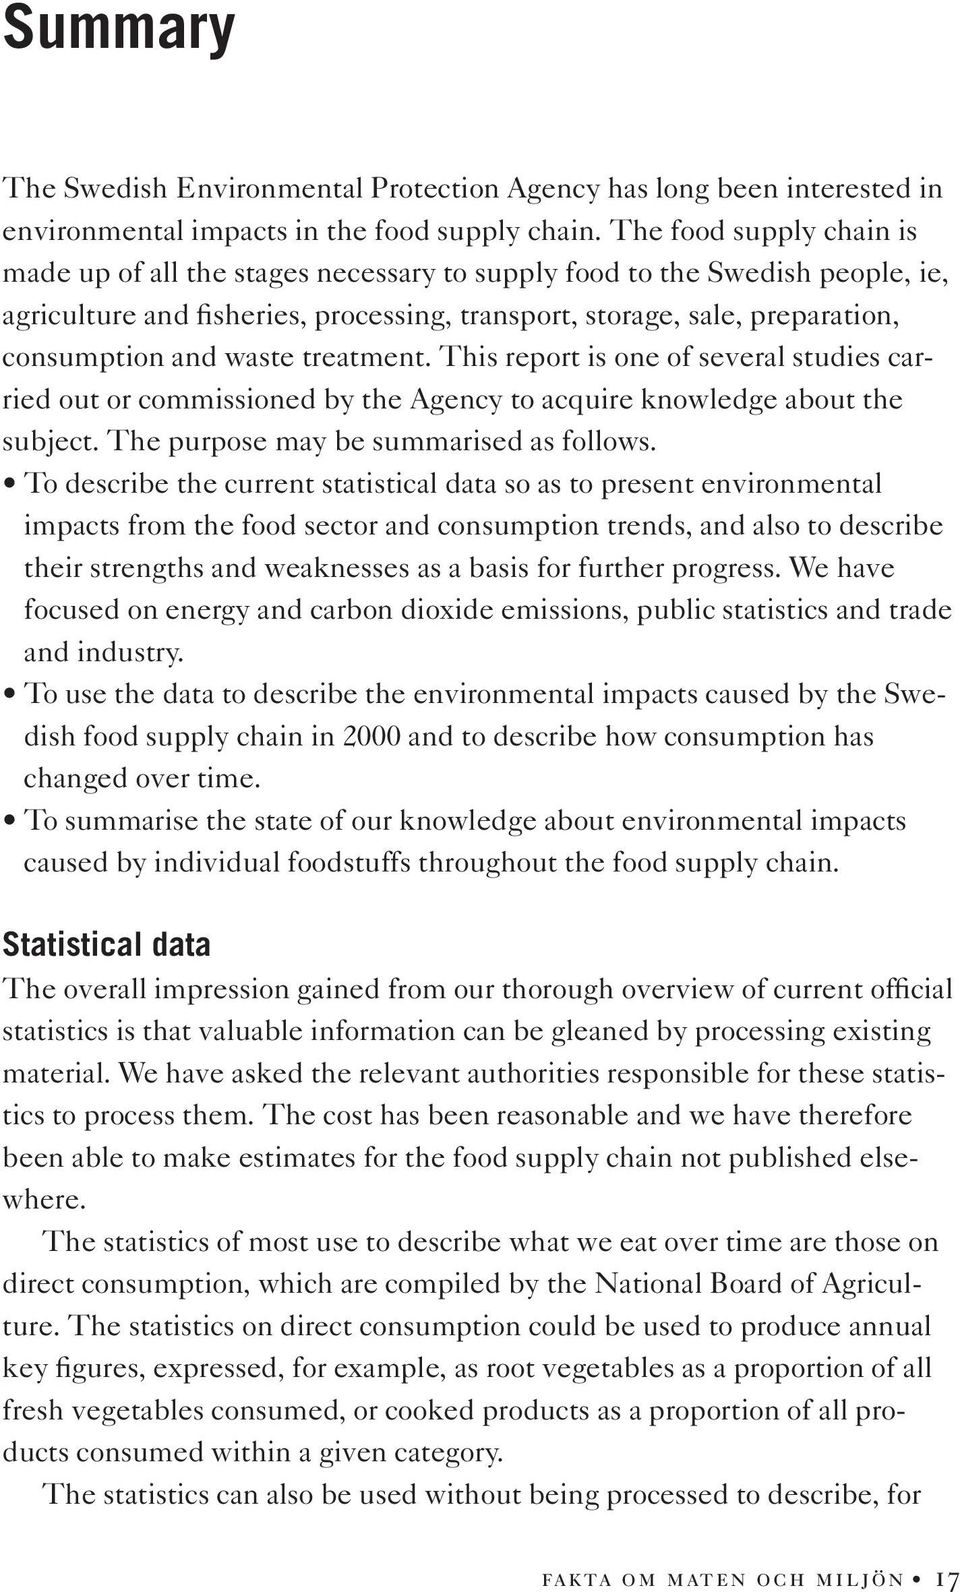 waste treatment. This report is one of several studies carried out or commissioned by the Agency to acquire knowledge about the subject. The purpose may be summarised as follows.